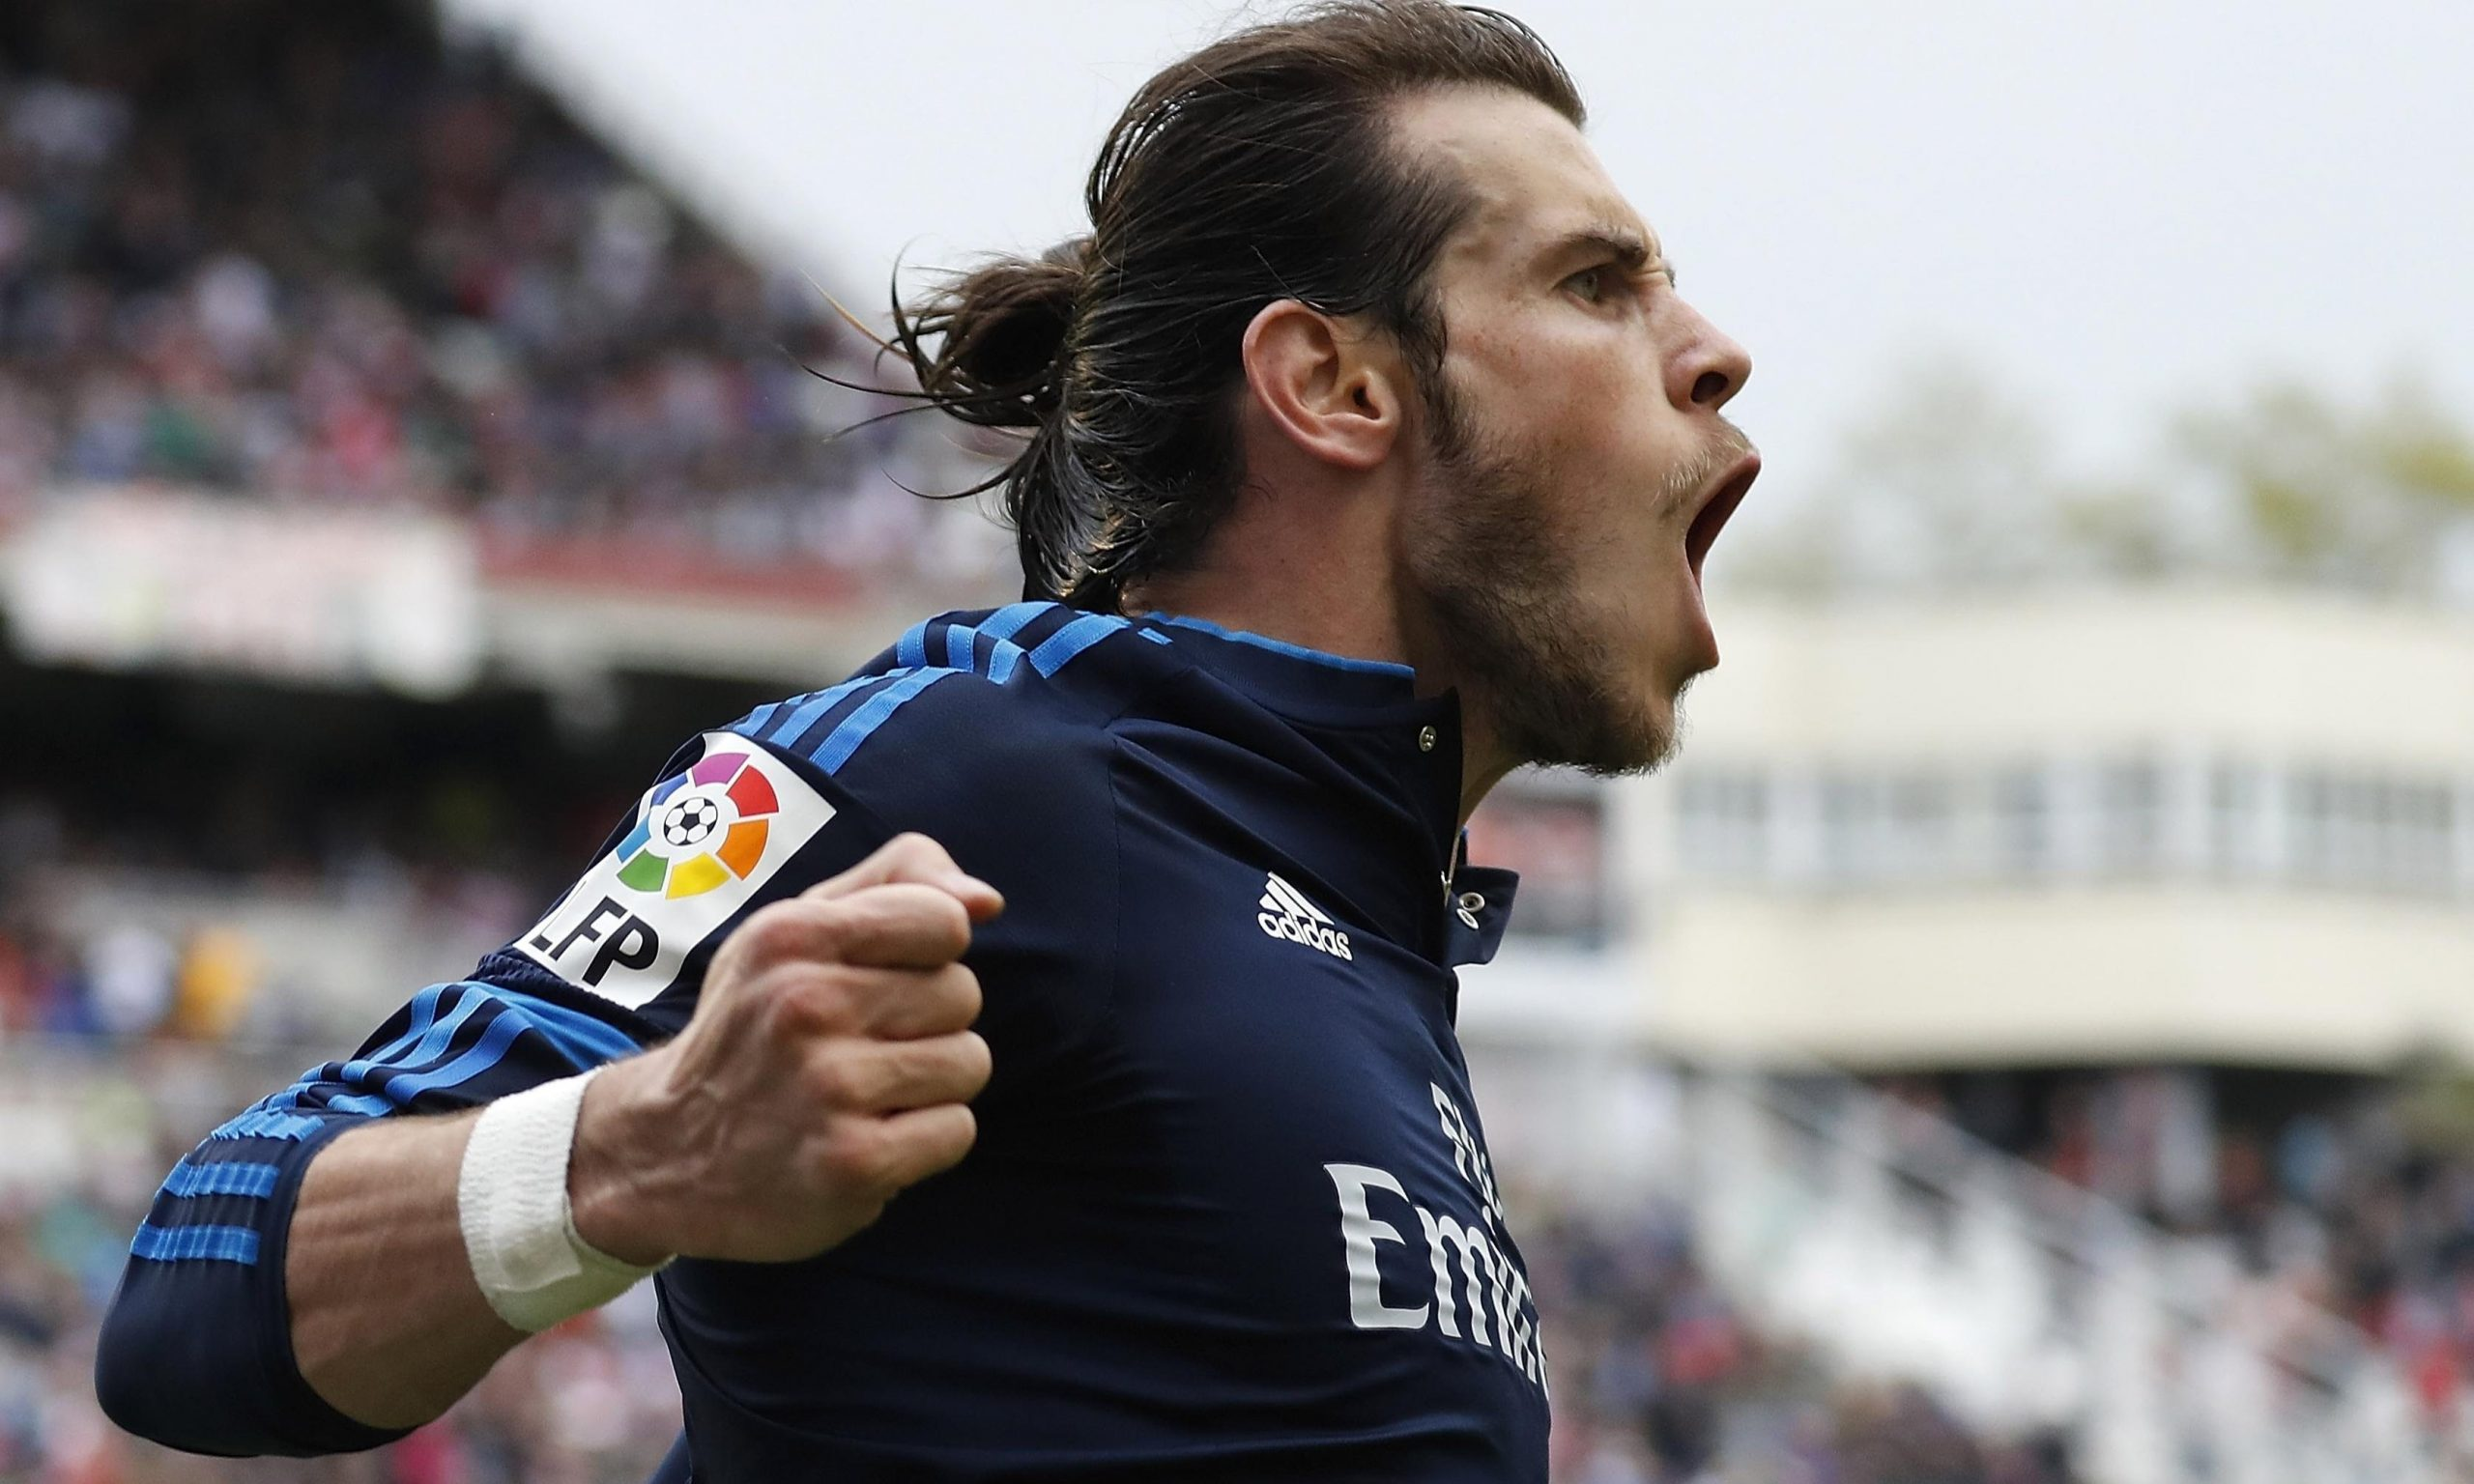 Pictures of Gareth Bale